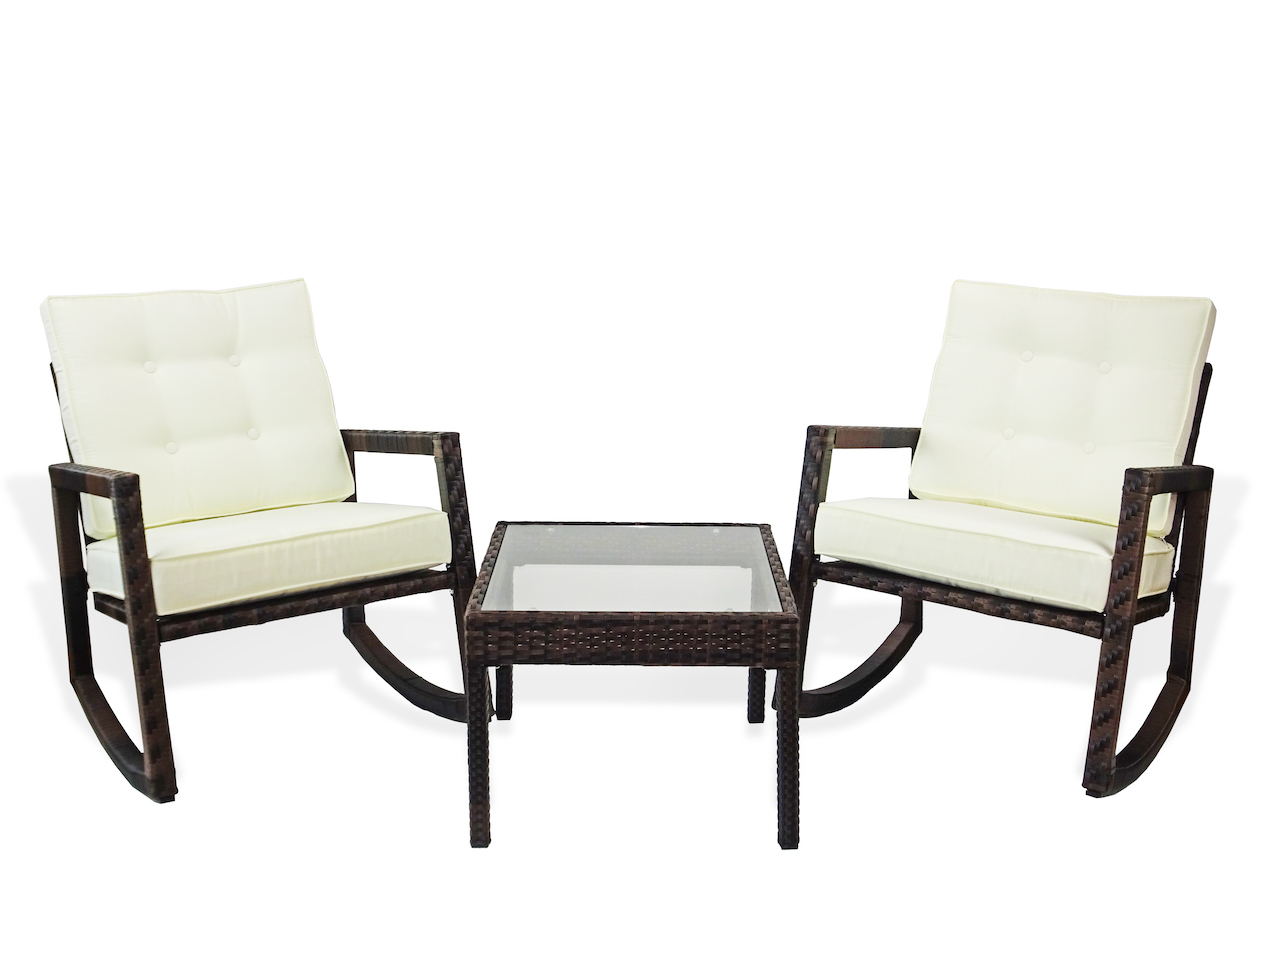 Buy Patio 3 Pc Lounge Set Rocking Chairs And Coffee